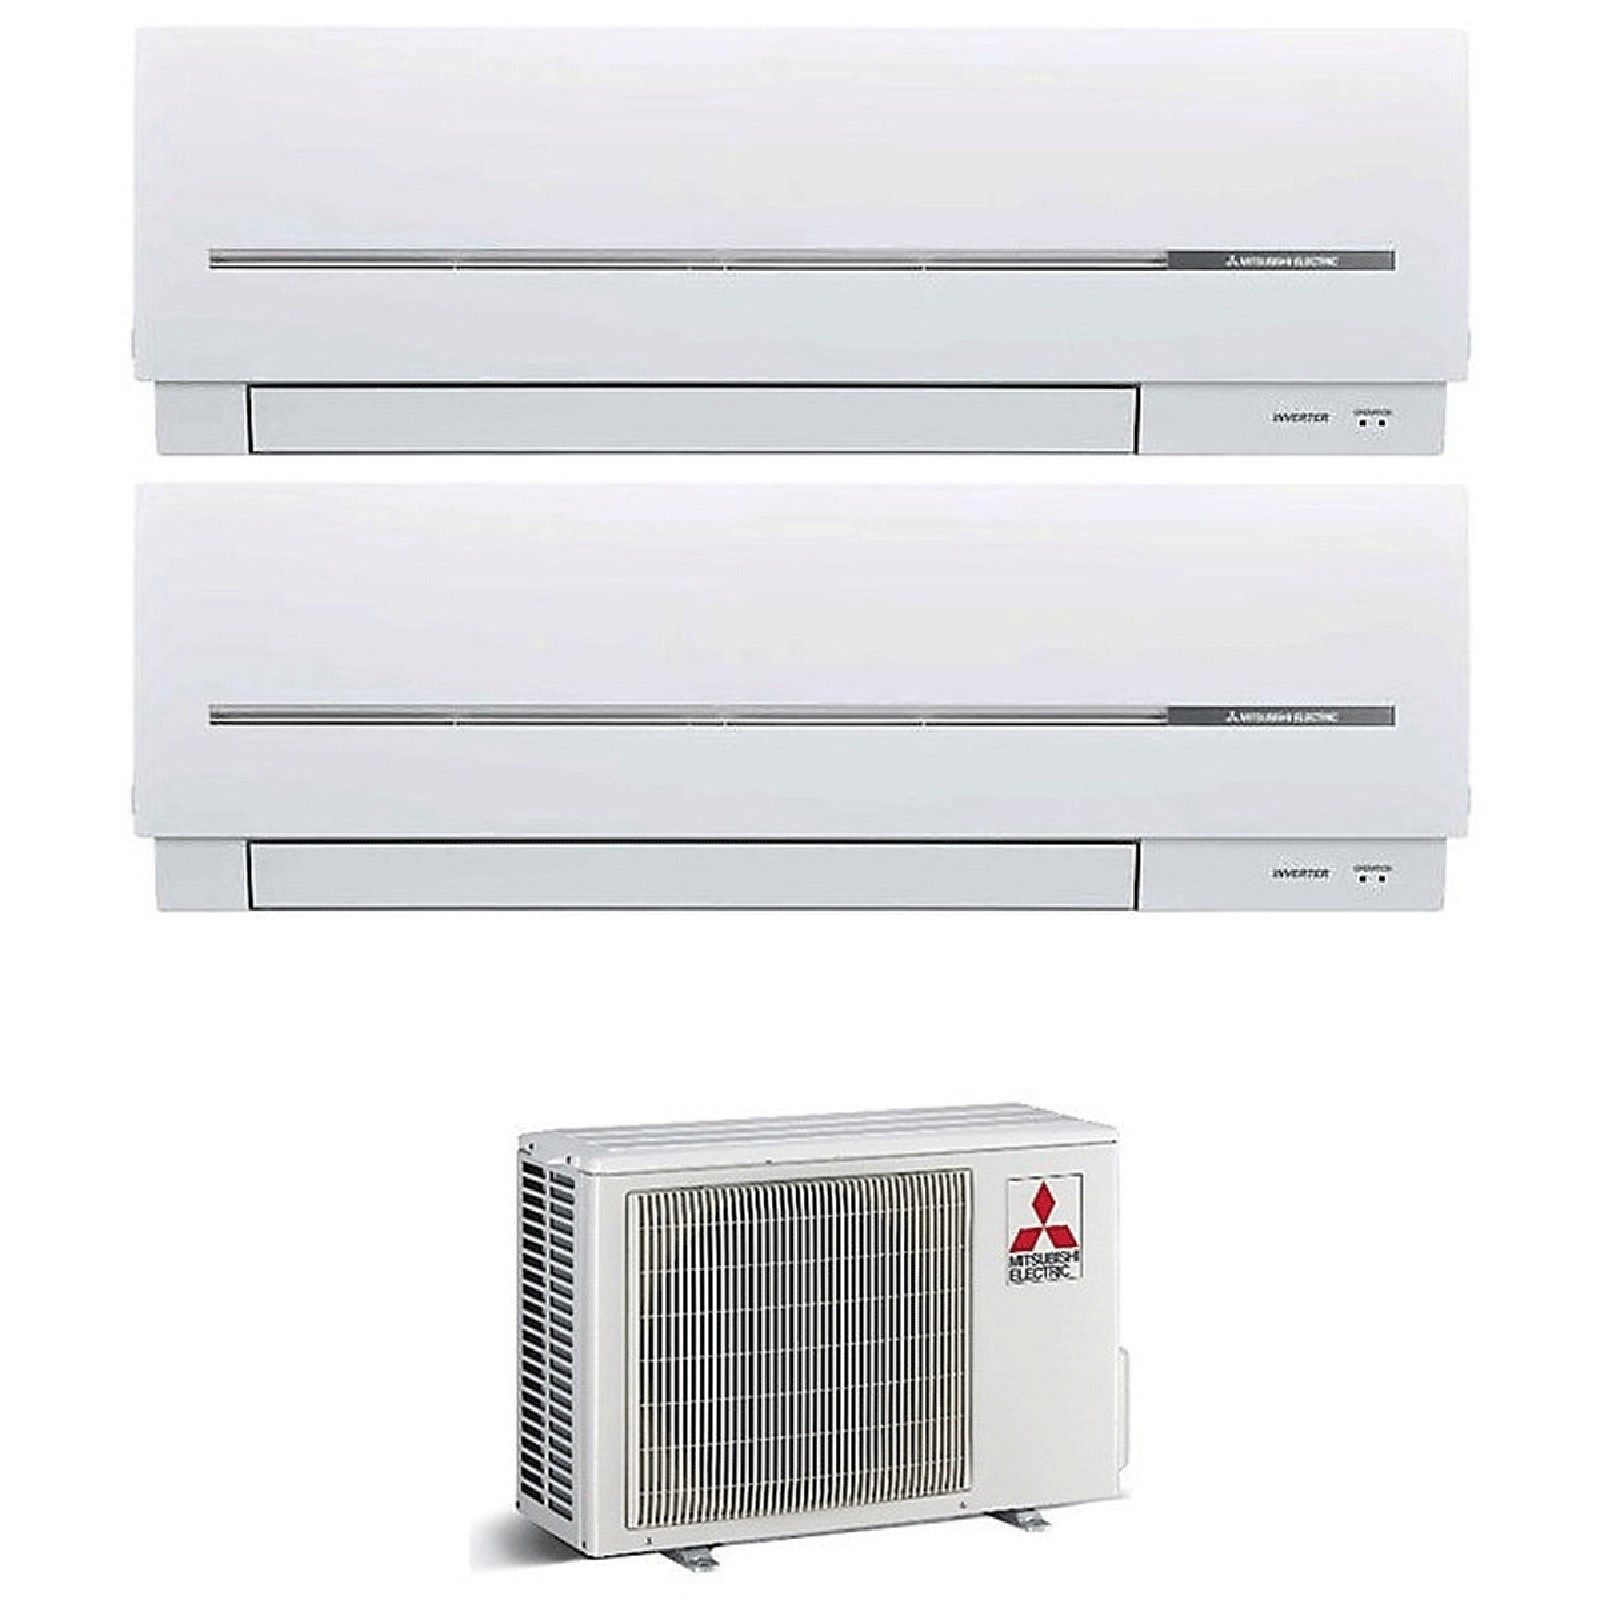 conditioner inverter hh including a btu trusted choice con wall installation air mitsubishi newstore scan your mount